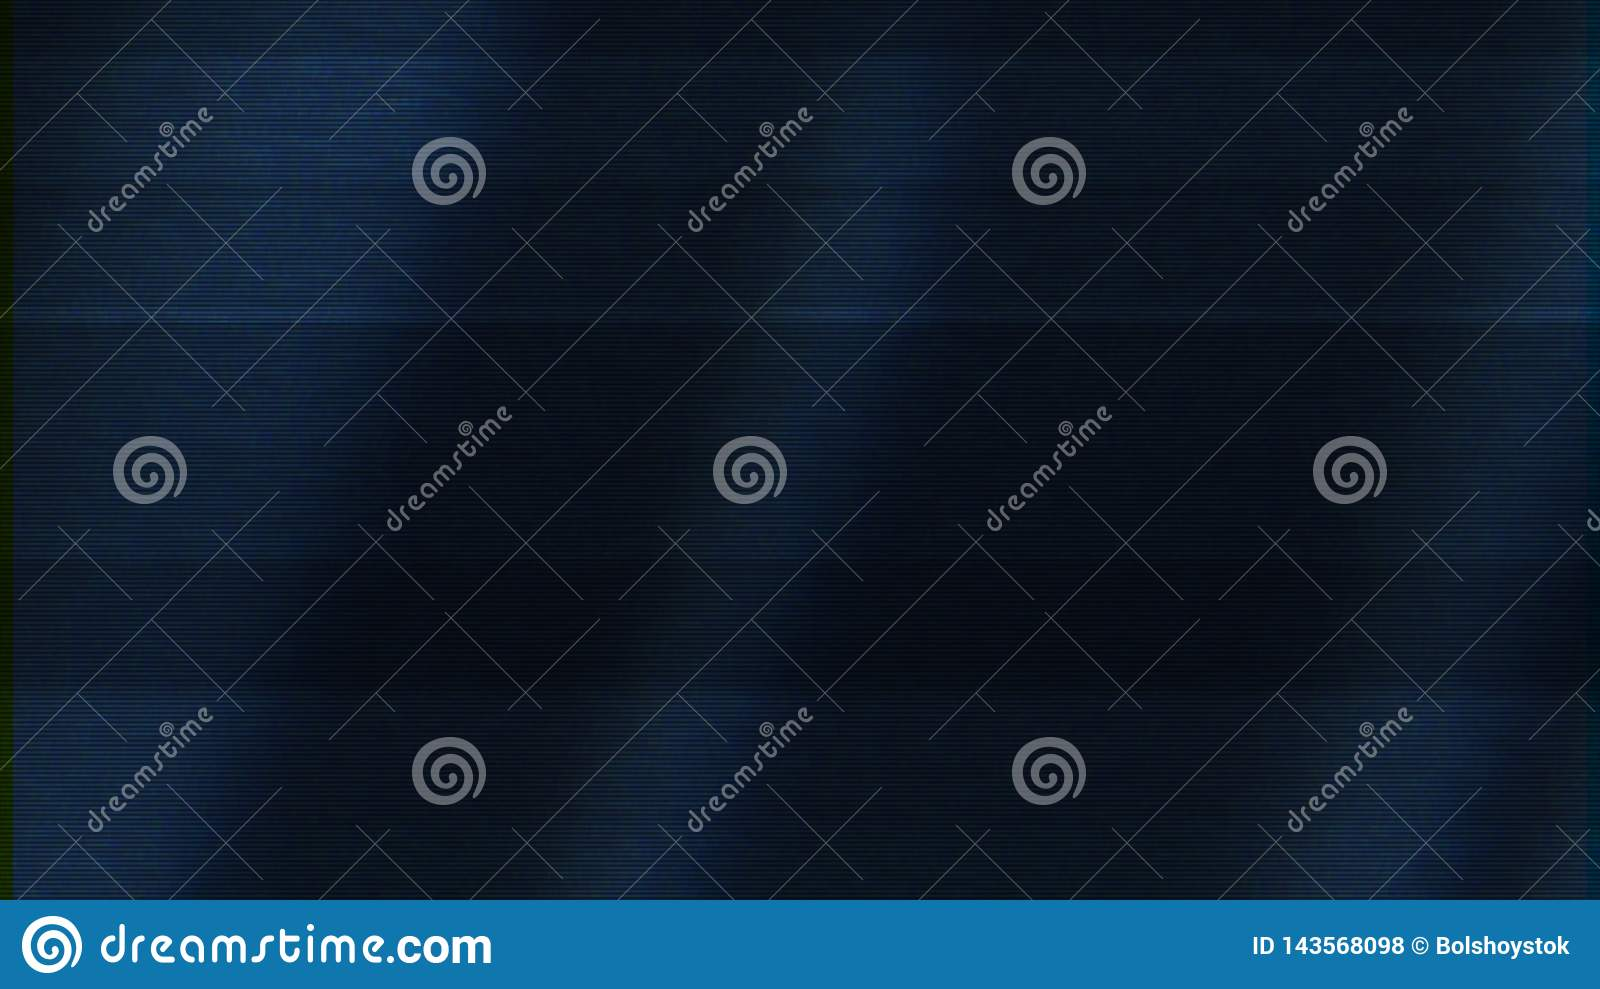 Bad TV signal on dark blue screen, seamless loop. Animation. Abstract animation with the noise on TV screen, motion of